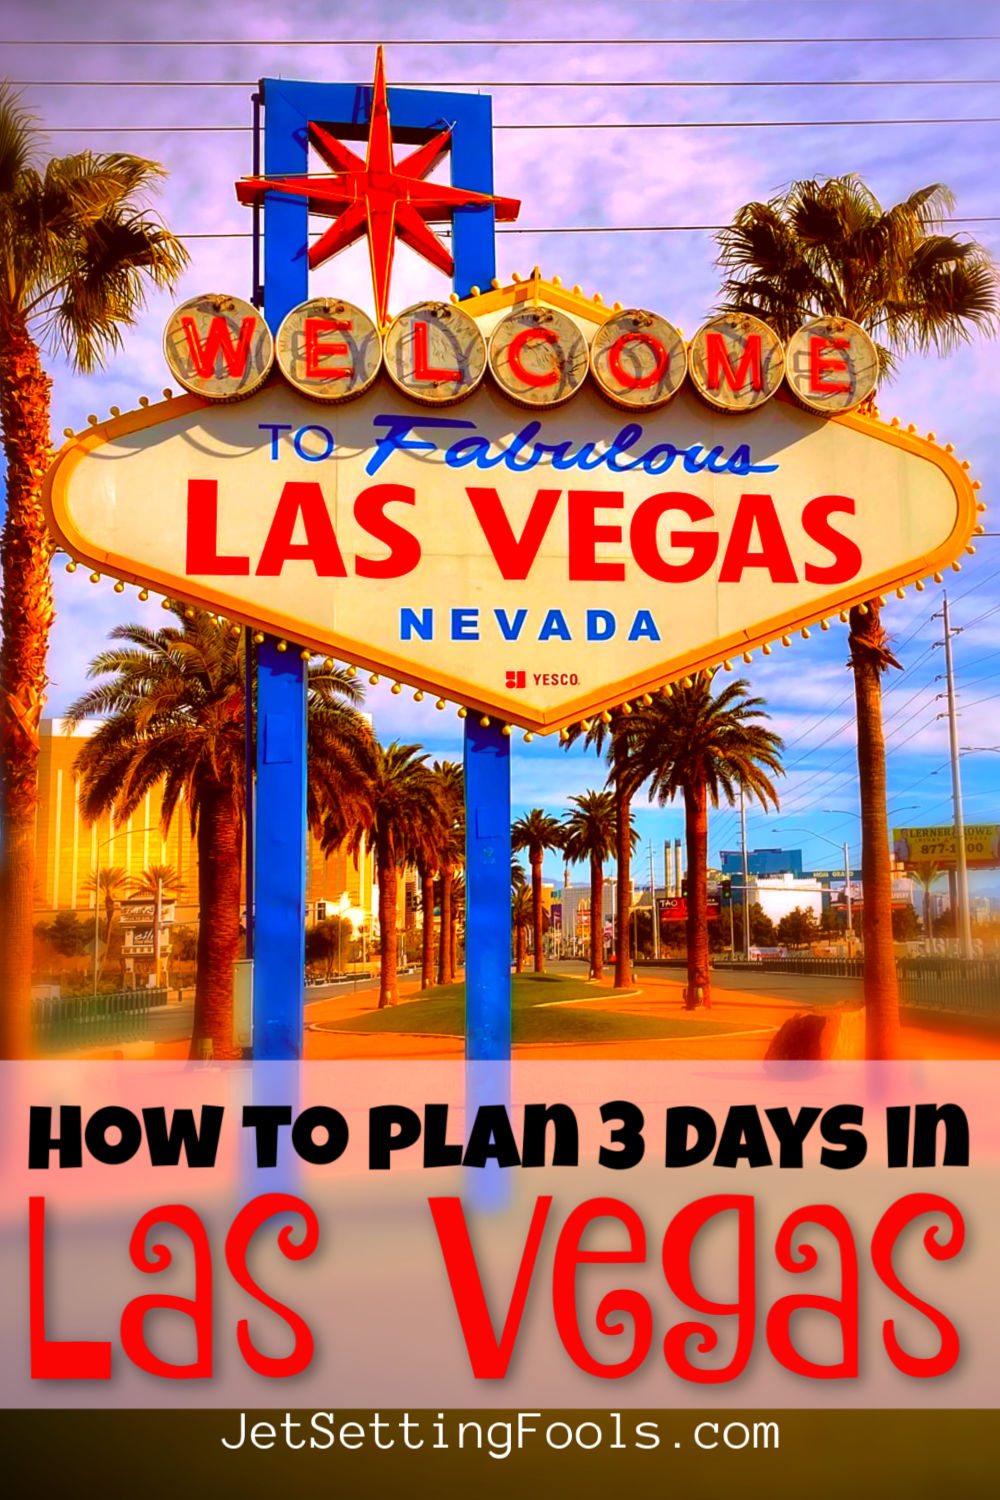 How To Plan 3 Days in Las Vegas by JetSettingFools.com